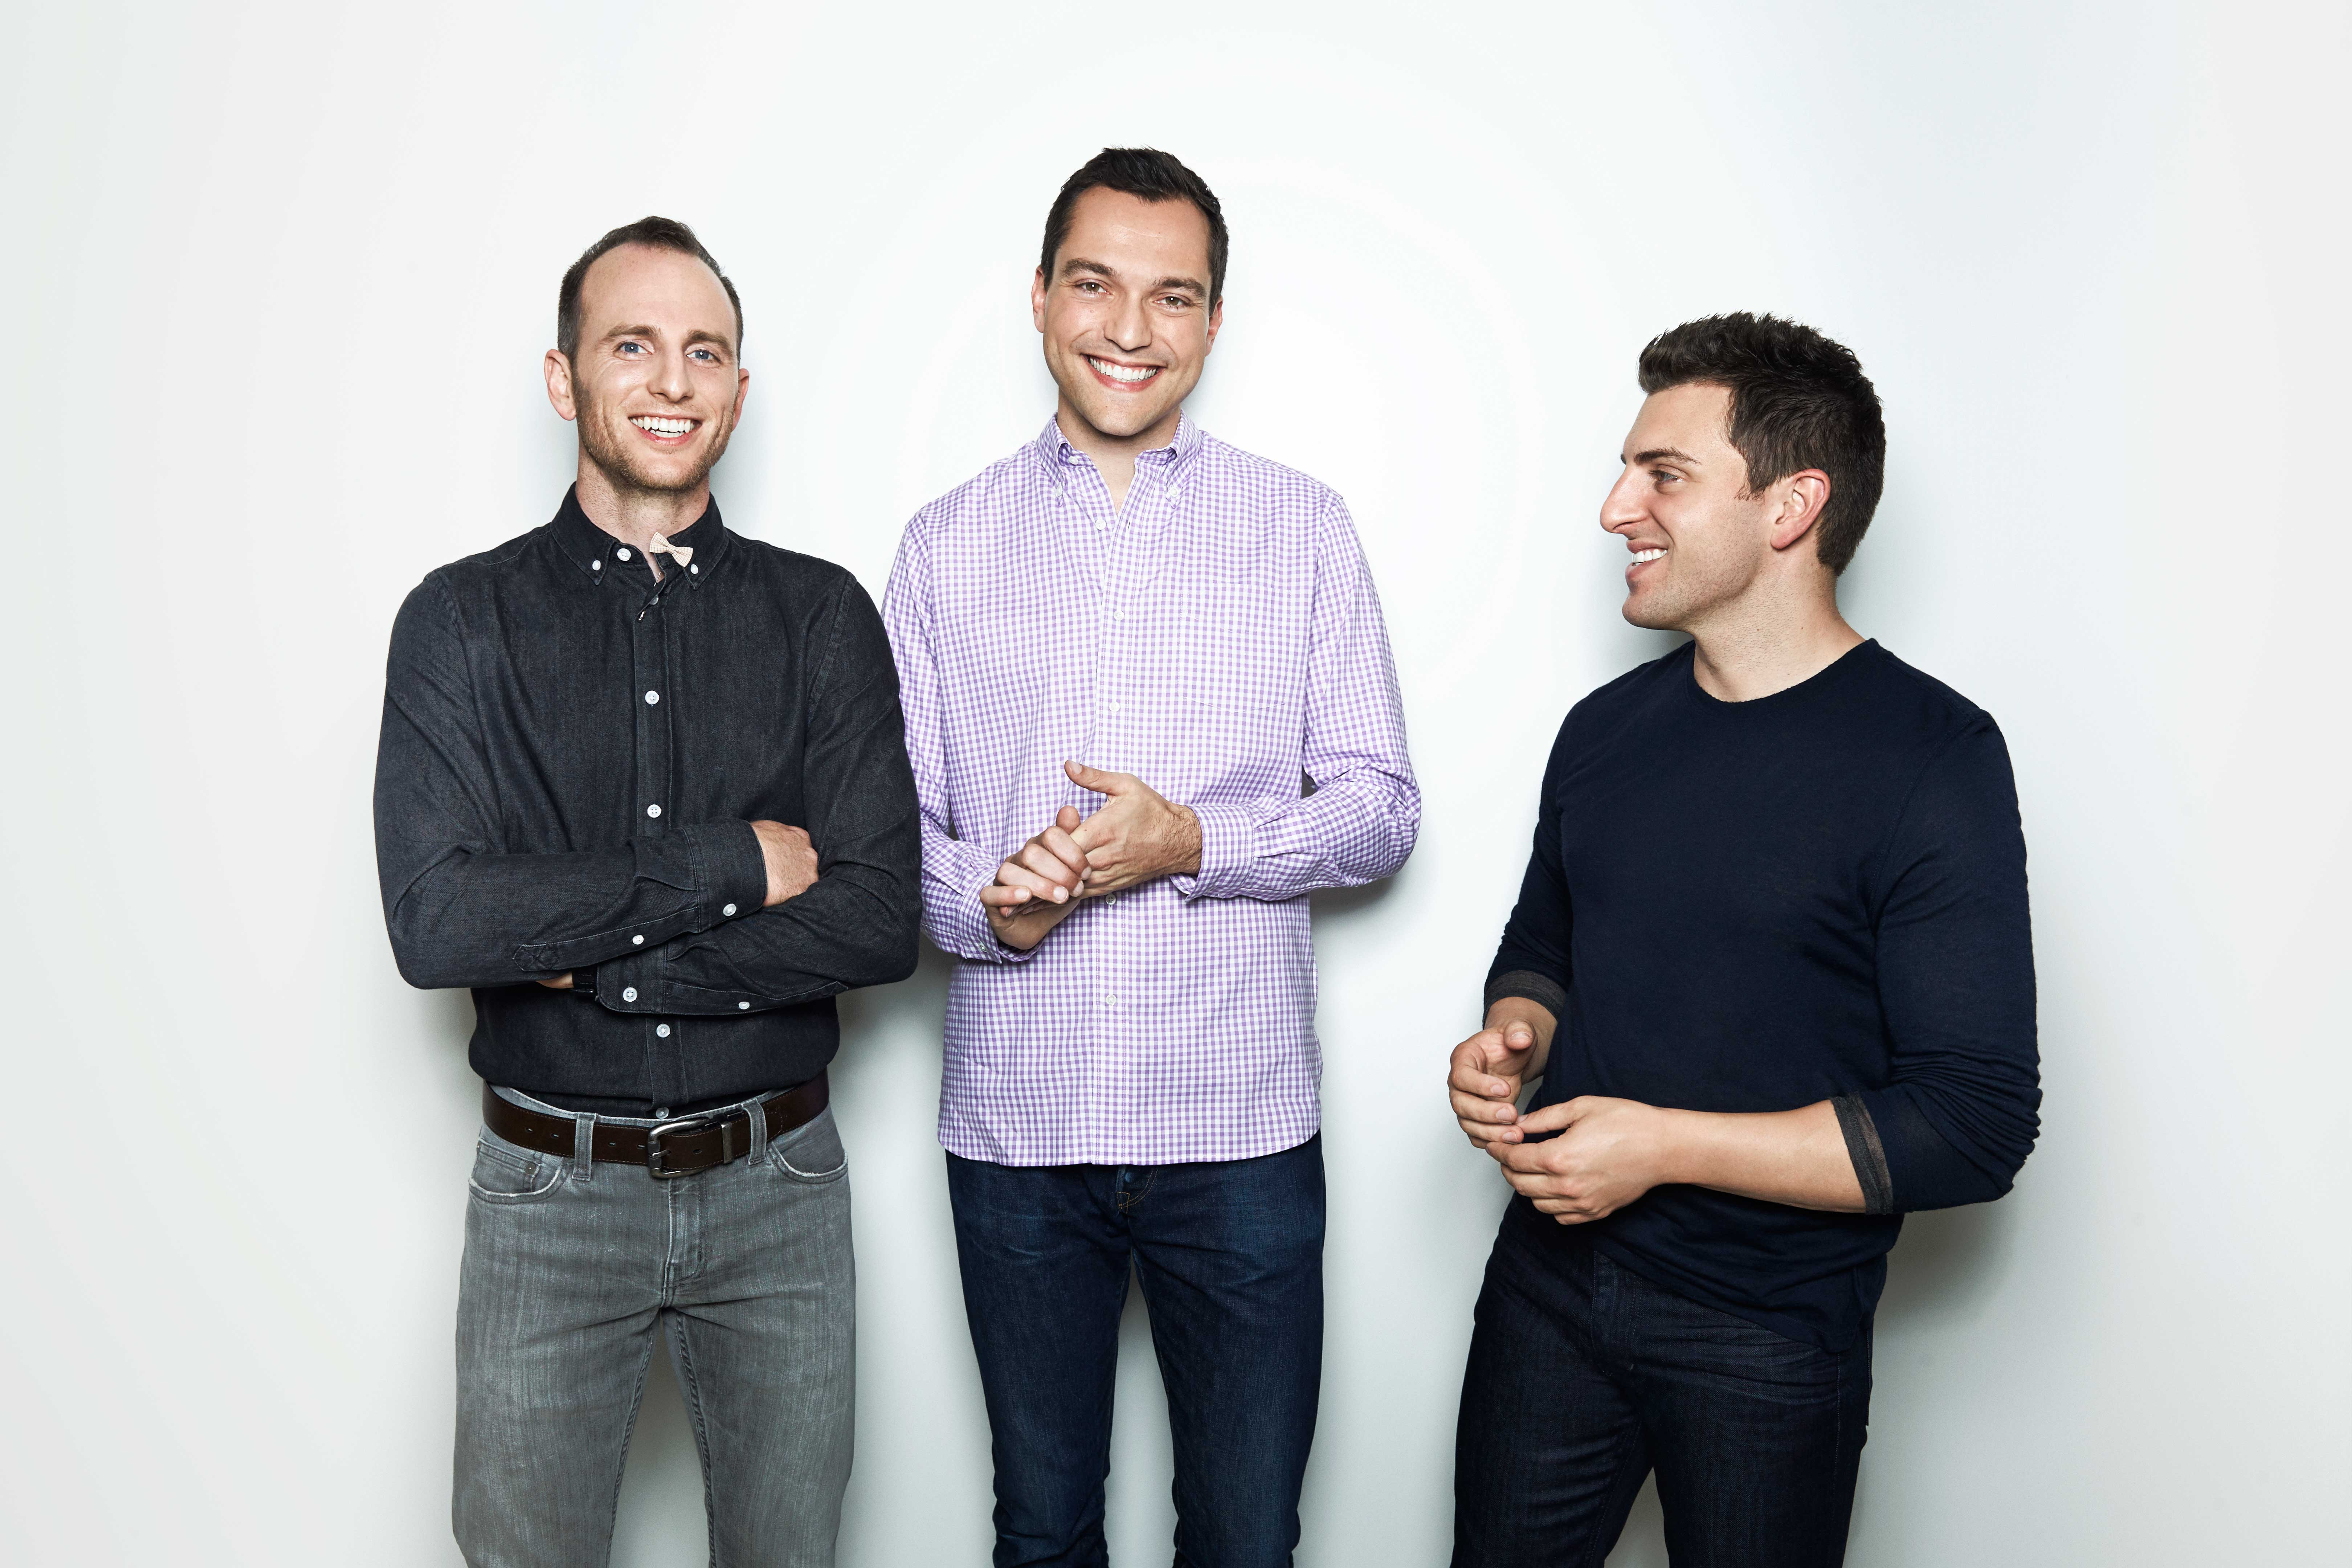 Co-founders, Joe Gebbia, CPO, left, Nathan Blecharczyk, CTO, Brian Chesky, CEO.